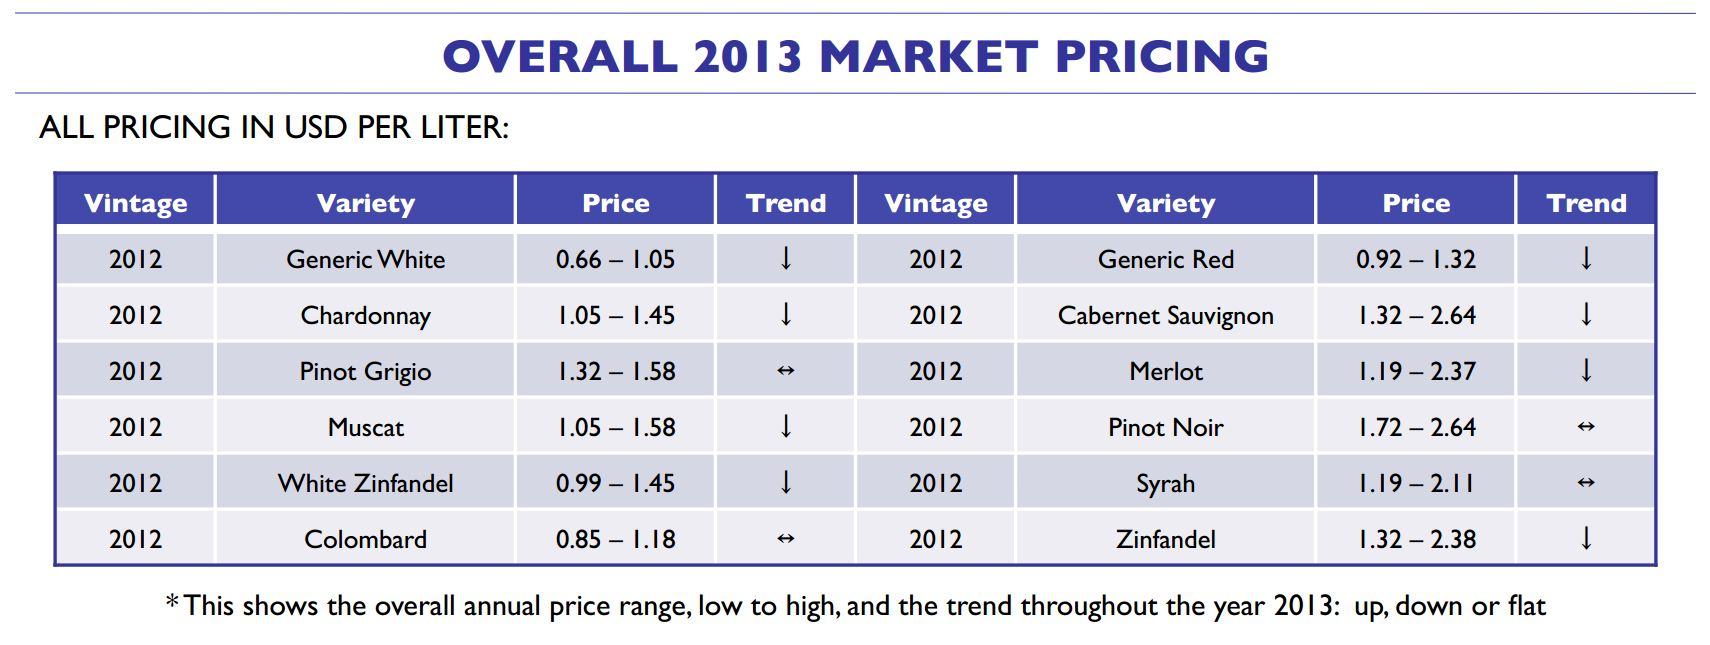 Overall 2013 Market Pricing